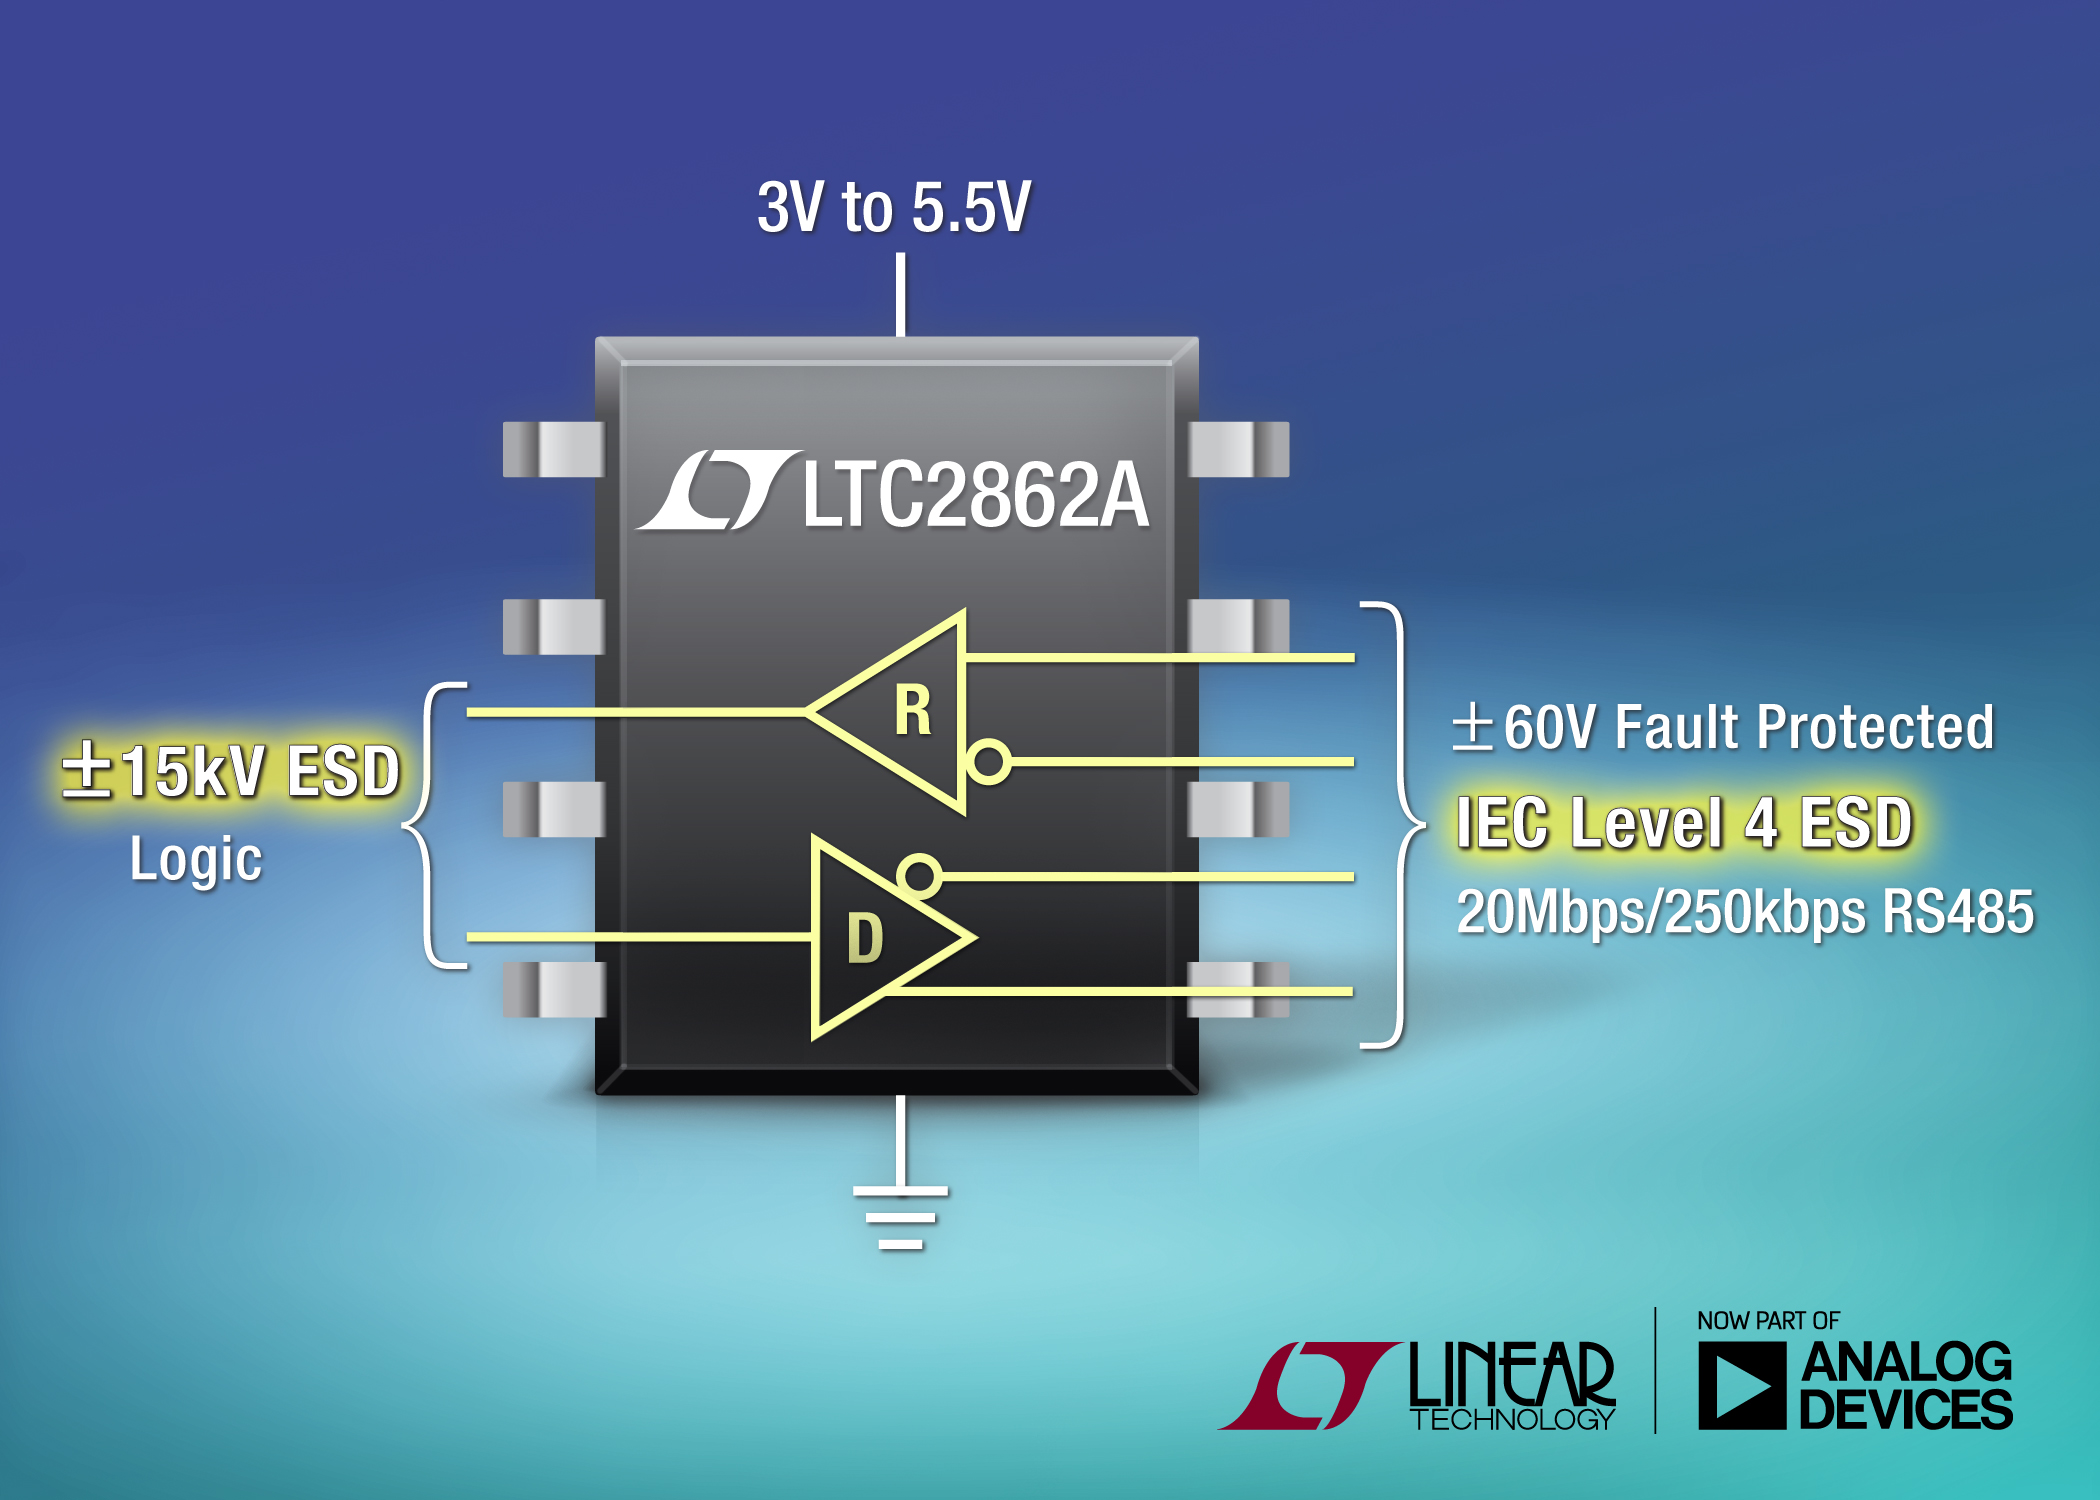 Rugged RS485 Transceiver Meets IEC Level 4 ESD Standard